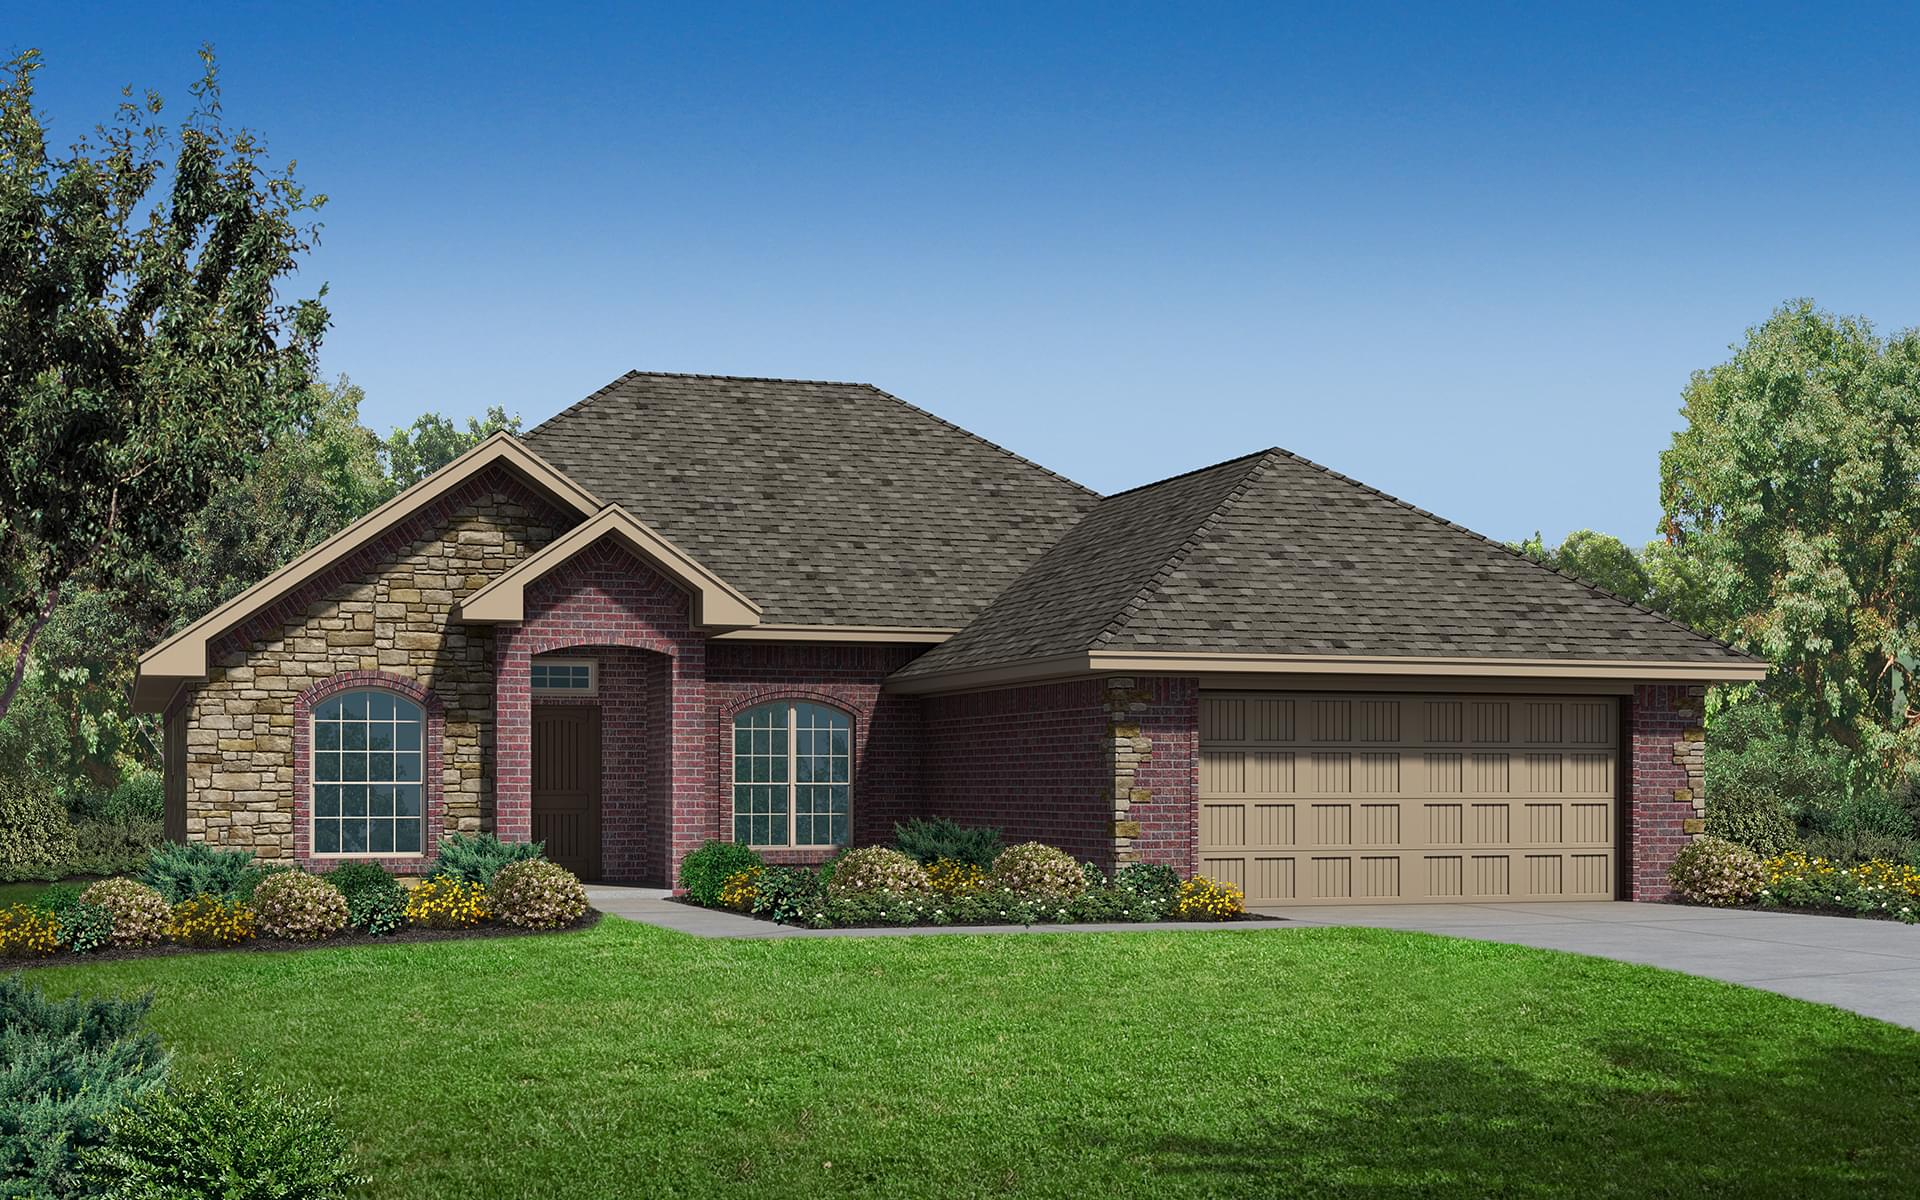 The brooke elite new home in edmond ok from home creations for Elite home designs